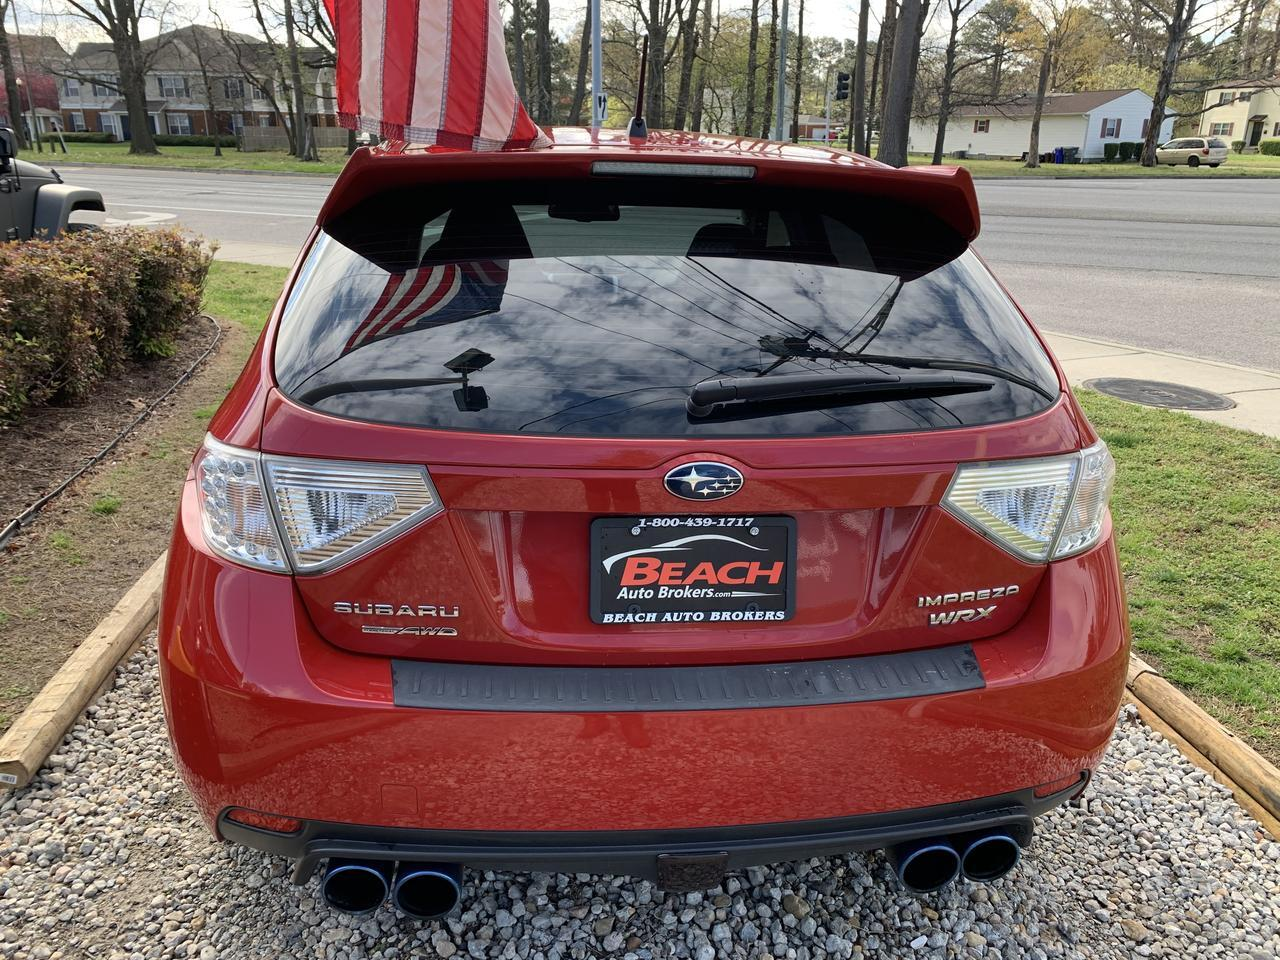 2011 SUBARU IMPREZA WRX,WARRANTY, MANUAL, AUX/USB PORT, KEYLESS ENTRY, BLUETOOTH, CLEAN CARFAX! Norfolk VA